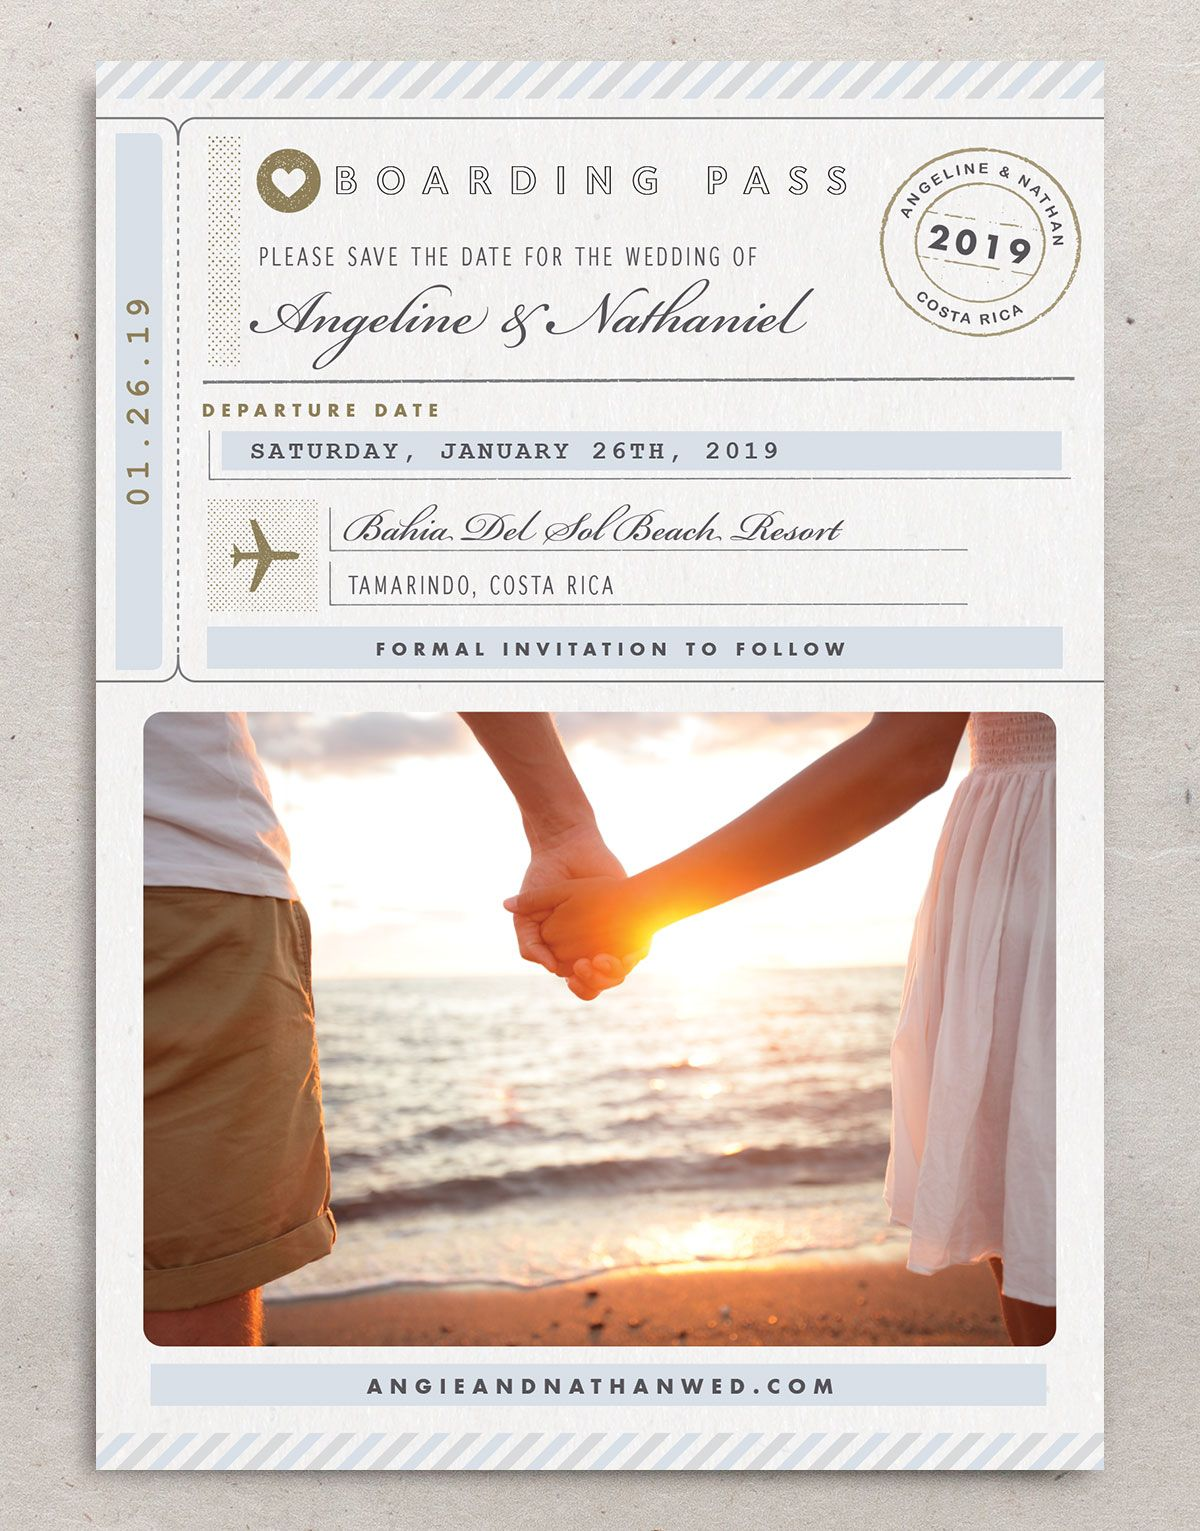 Vintage Boarding Pass save the date front blue